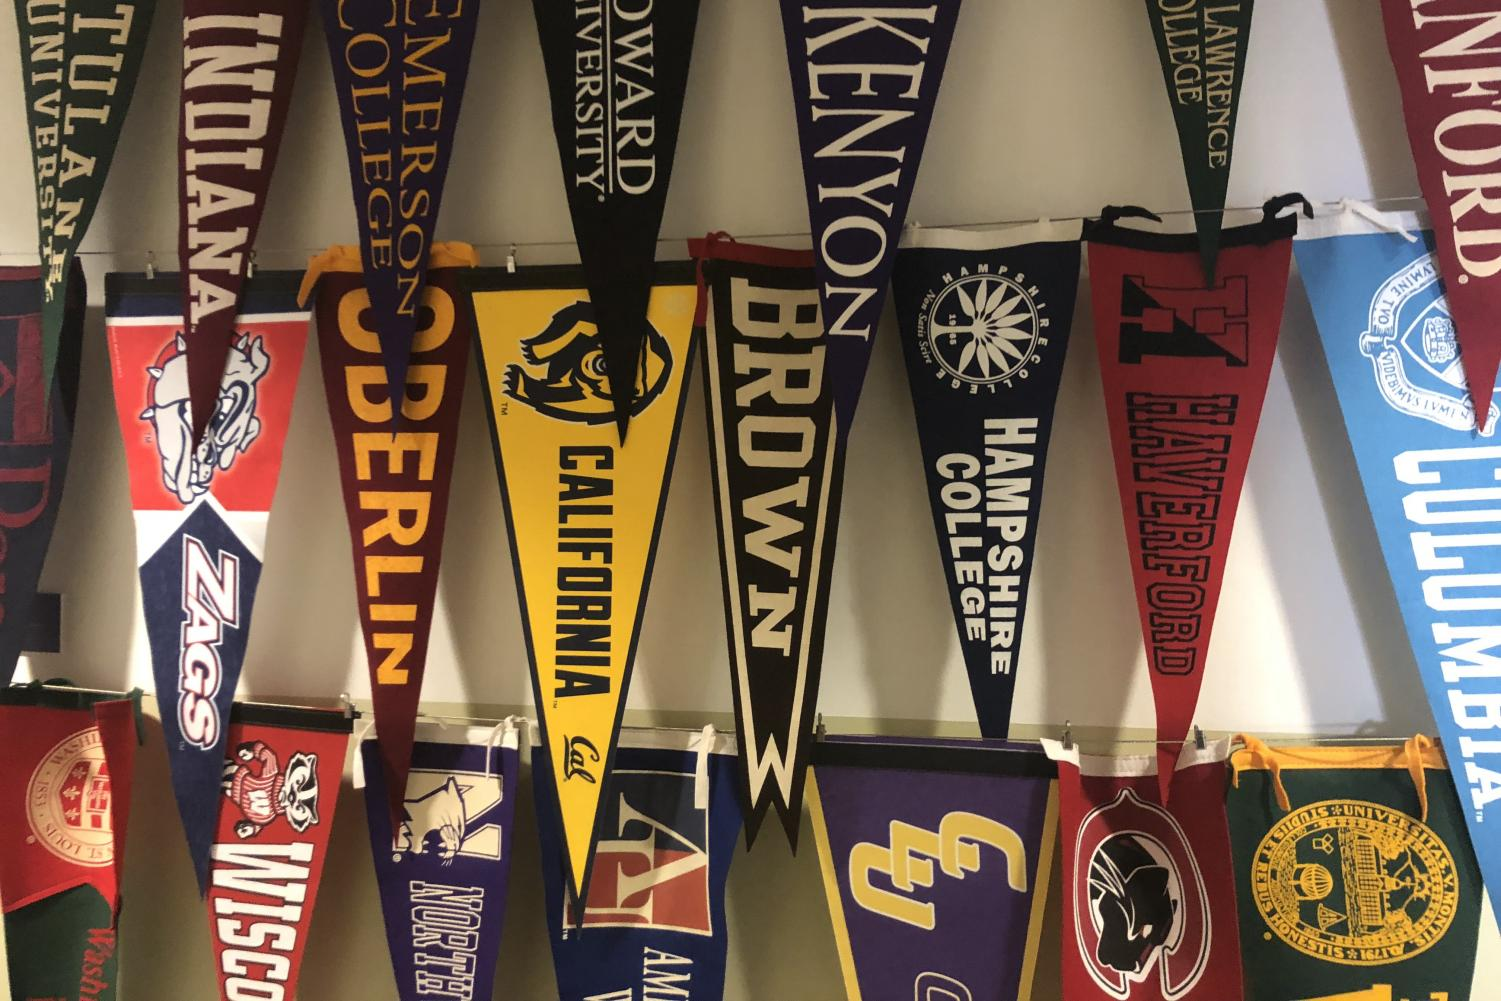 College pennants hang in the hallway. Last Tuesday, top universities including Yale, Stanford and University of Southern California were revealed to be part of a scheme that the FBI dubbed